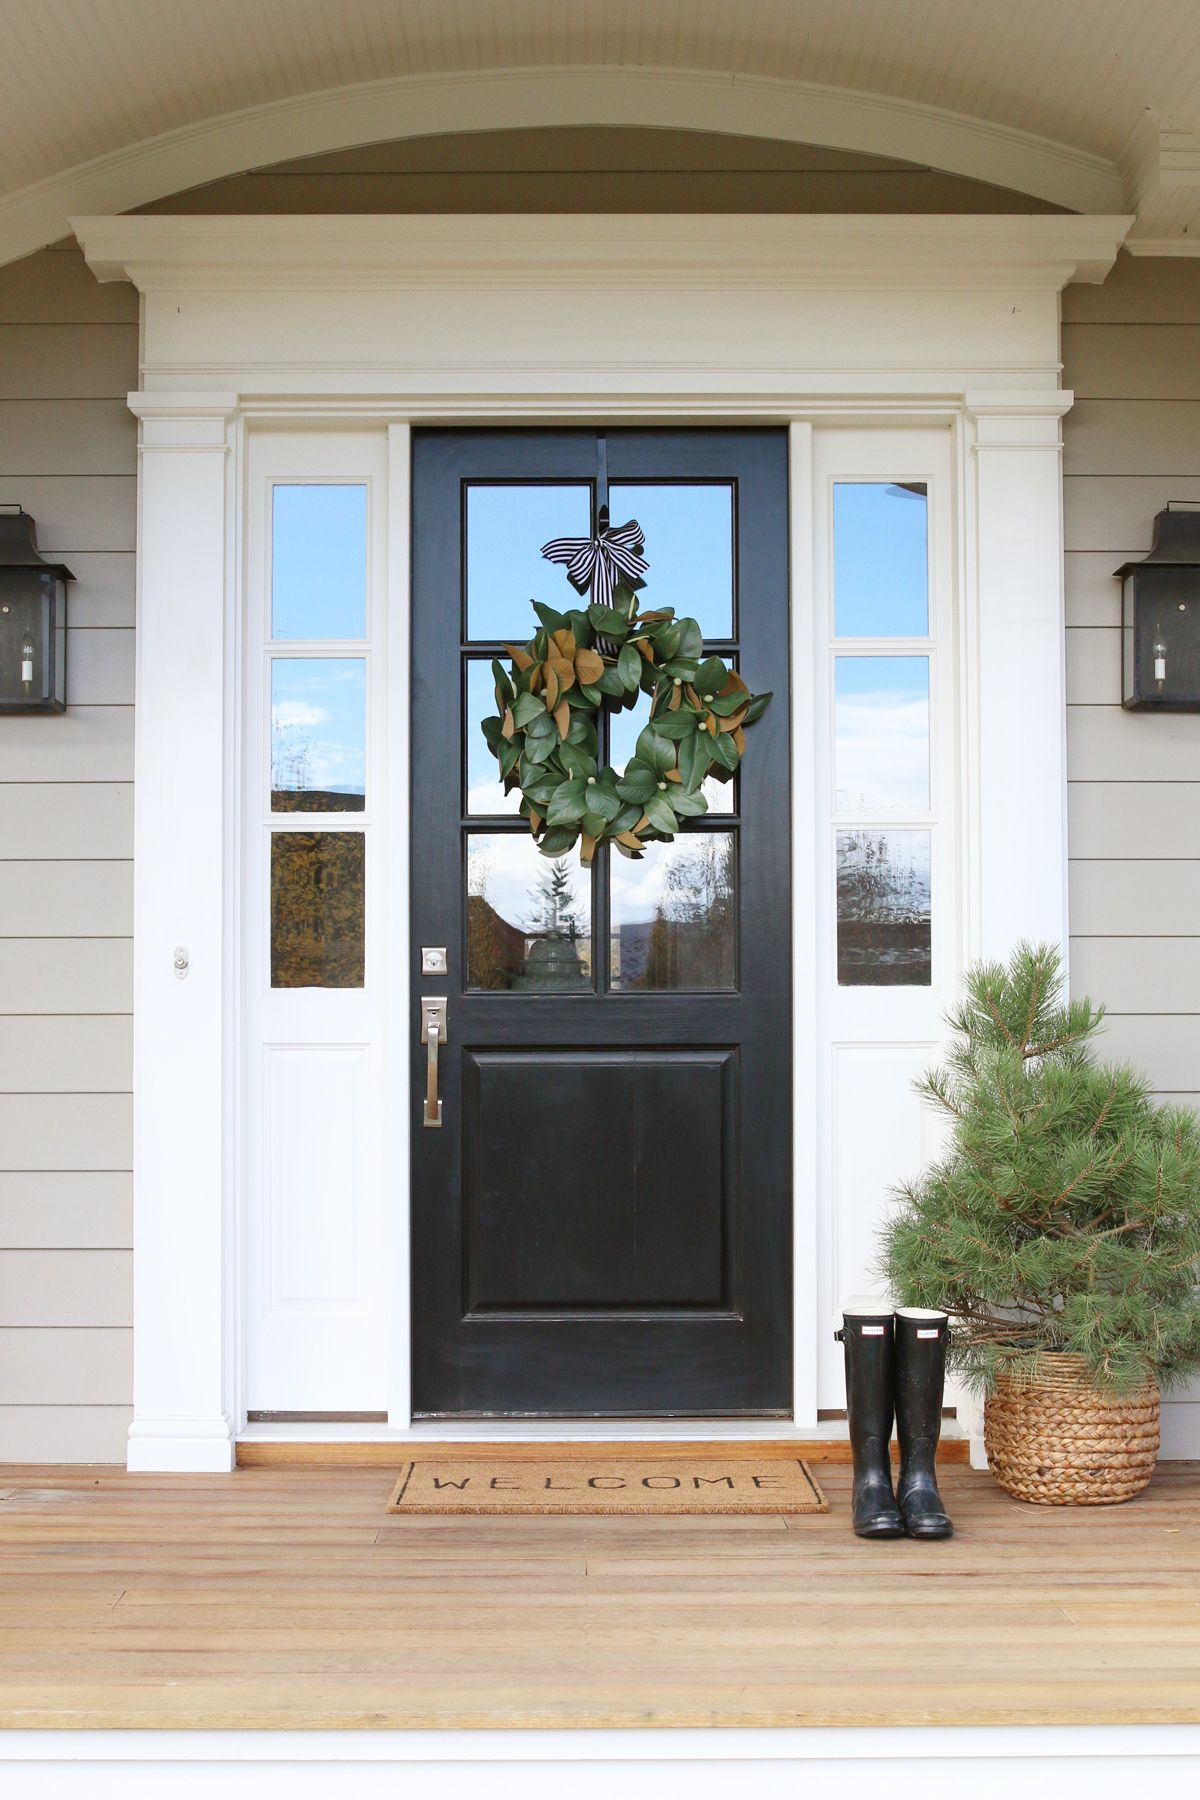 Shop this Image at McGee ... & Front Door Decor: Magnolia Wreaths | Front doors Doors and Shopping